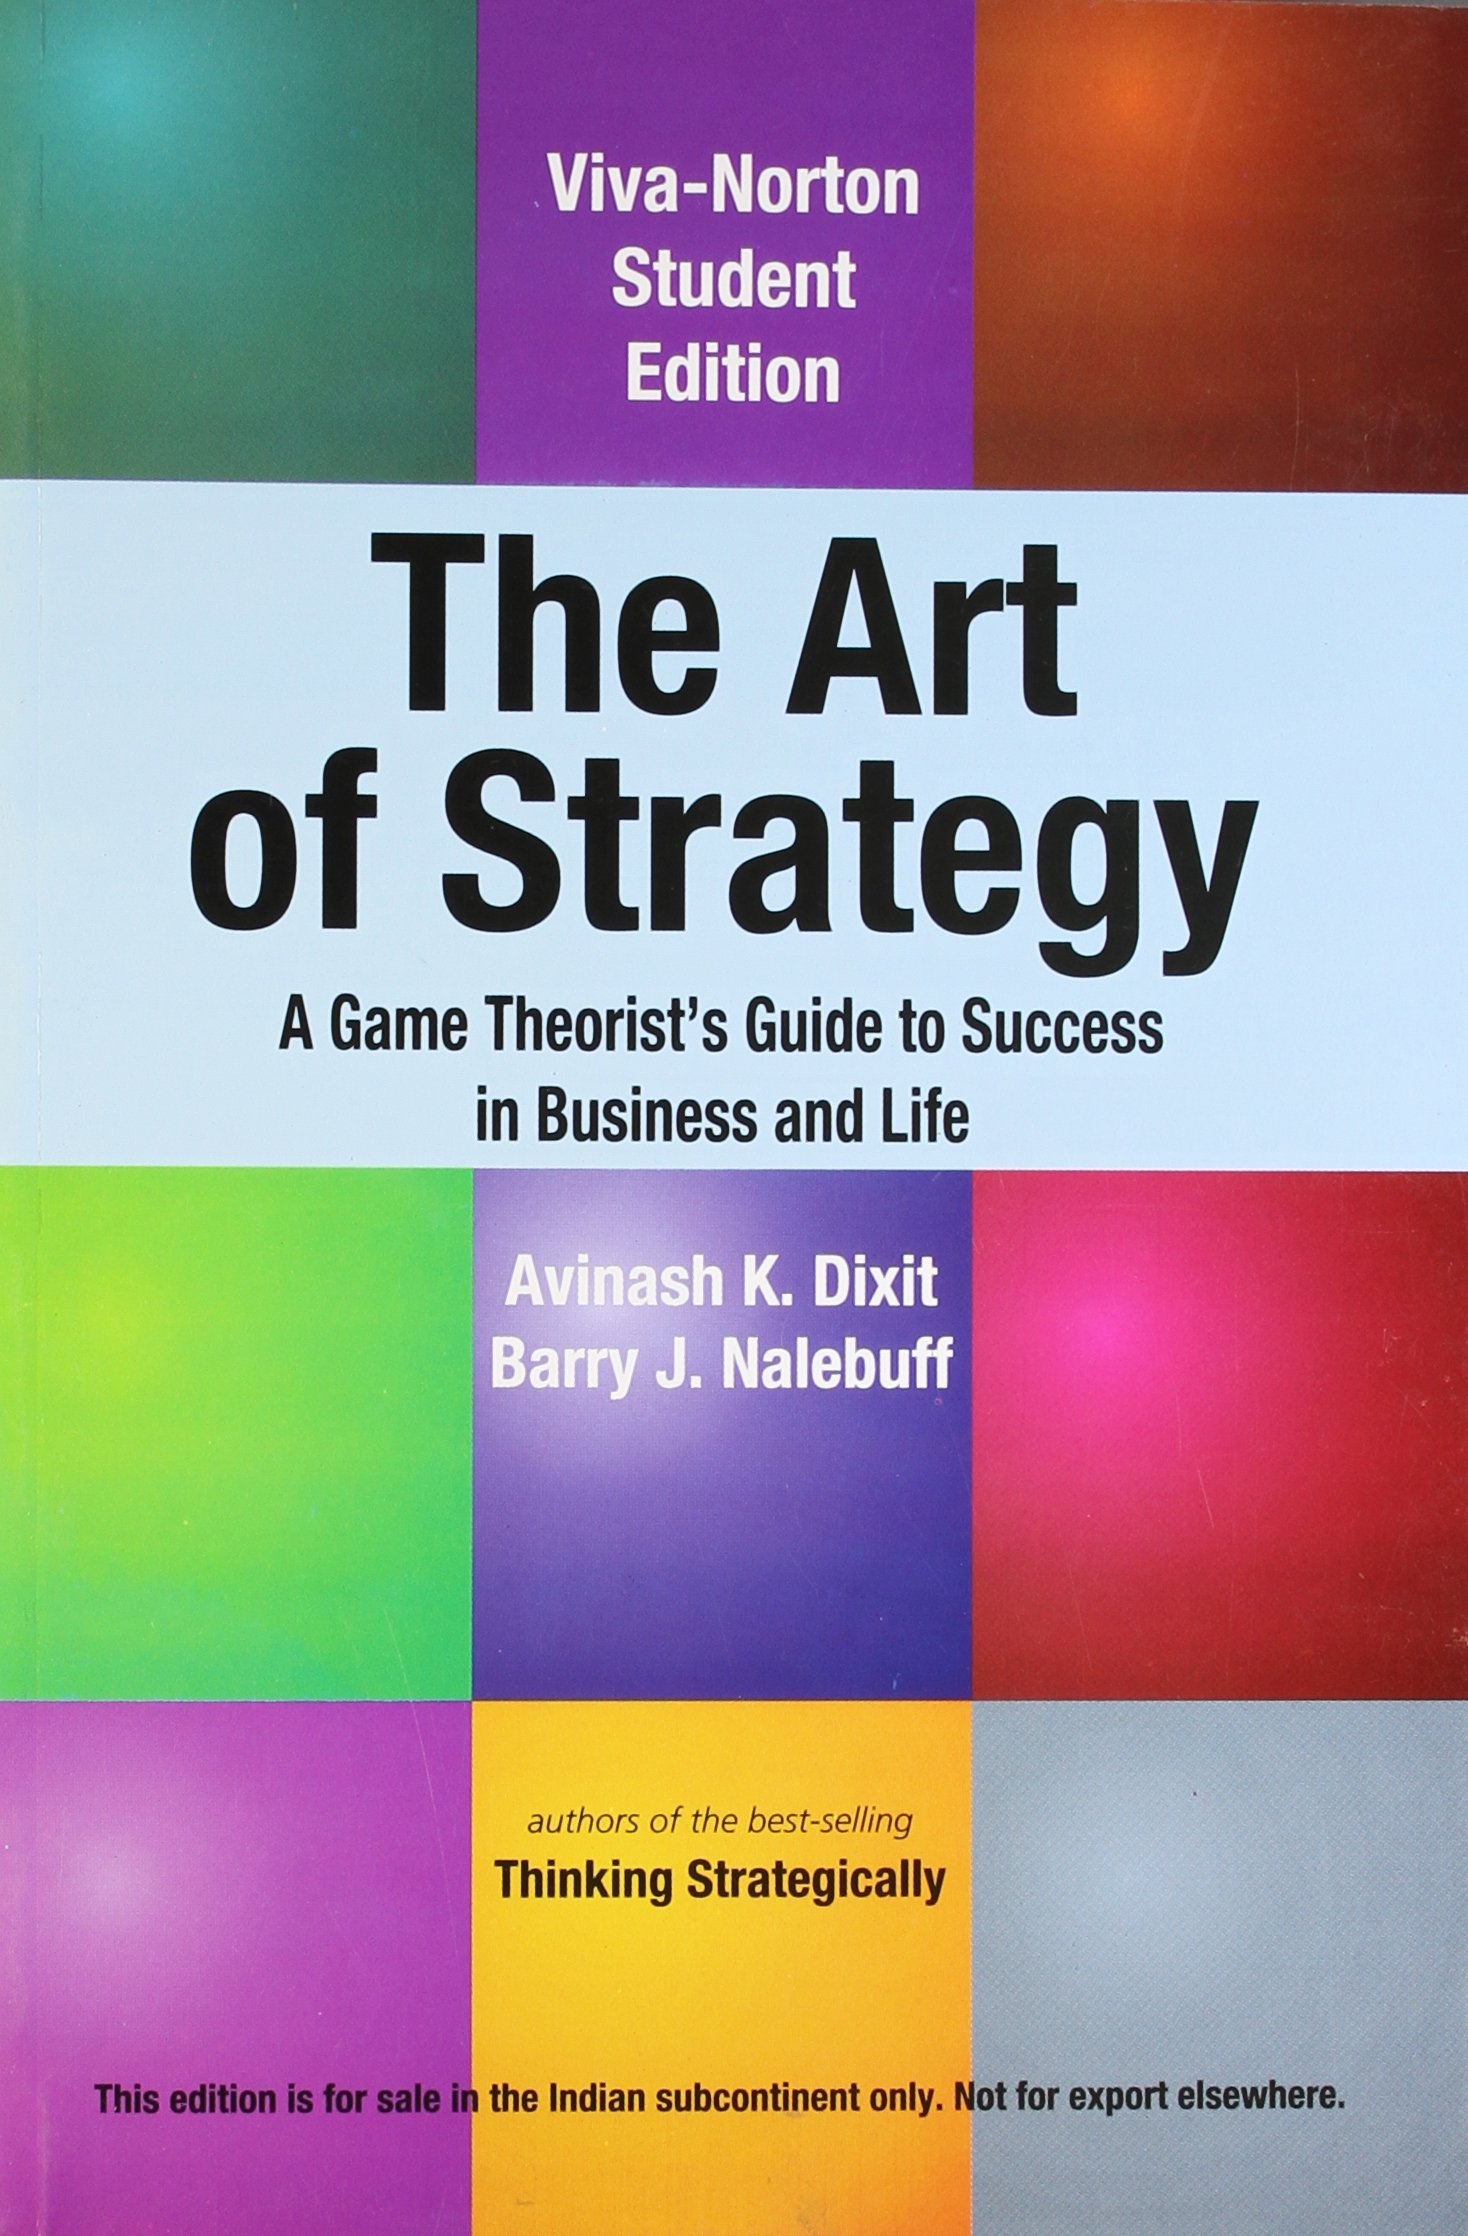 The Art of Strategy: Amazon.es: Dixit, Avinash K.: Libros en idiomas extranjeros